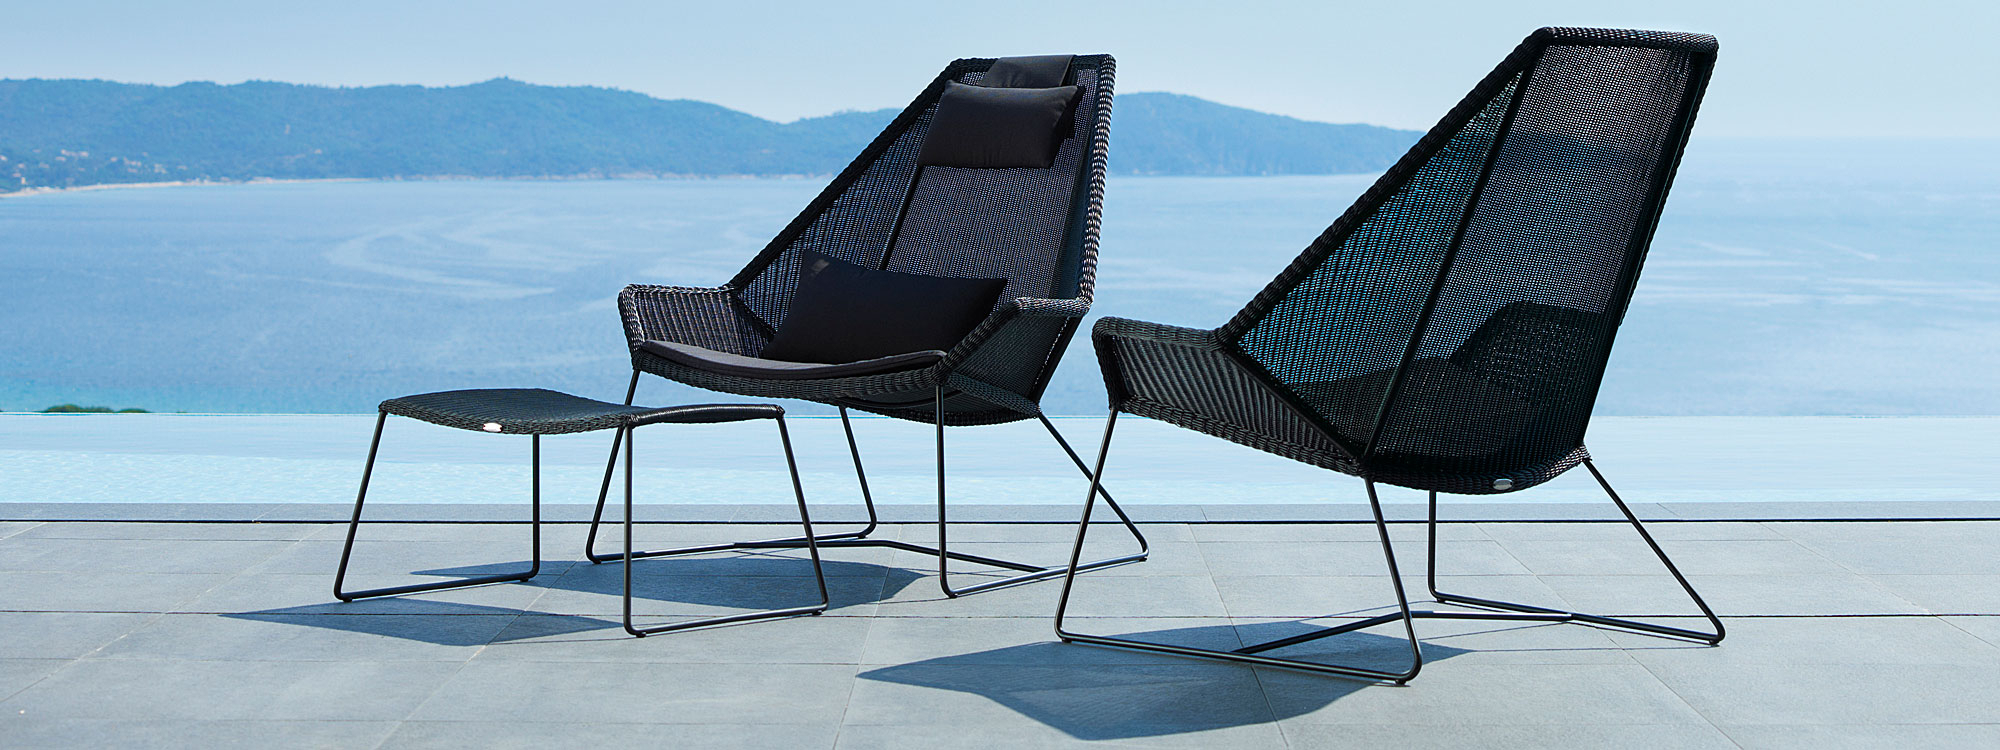 Breeze Modern Outdoor Lounge Furniture, Cane Line All Regarding Outdoor Sofas And Chairs (View 6 of 15)